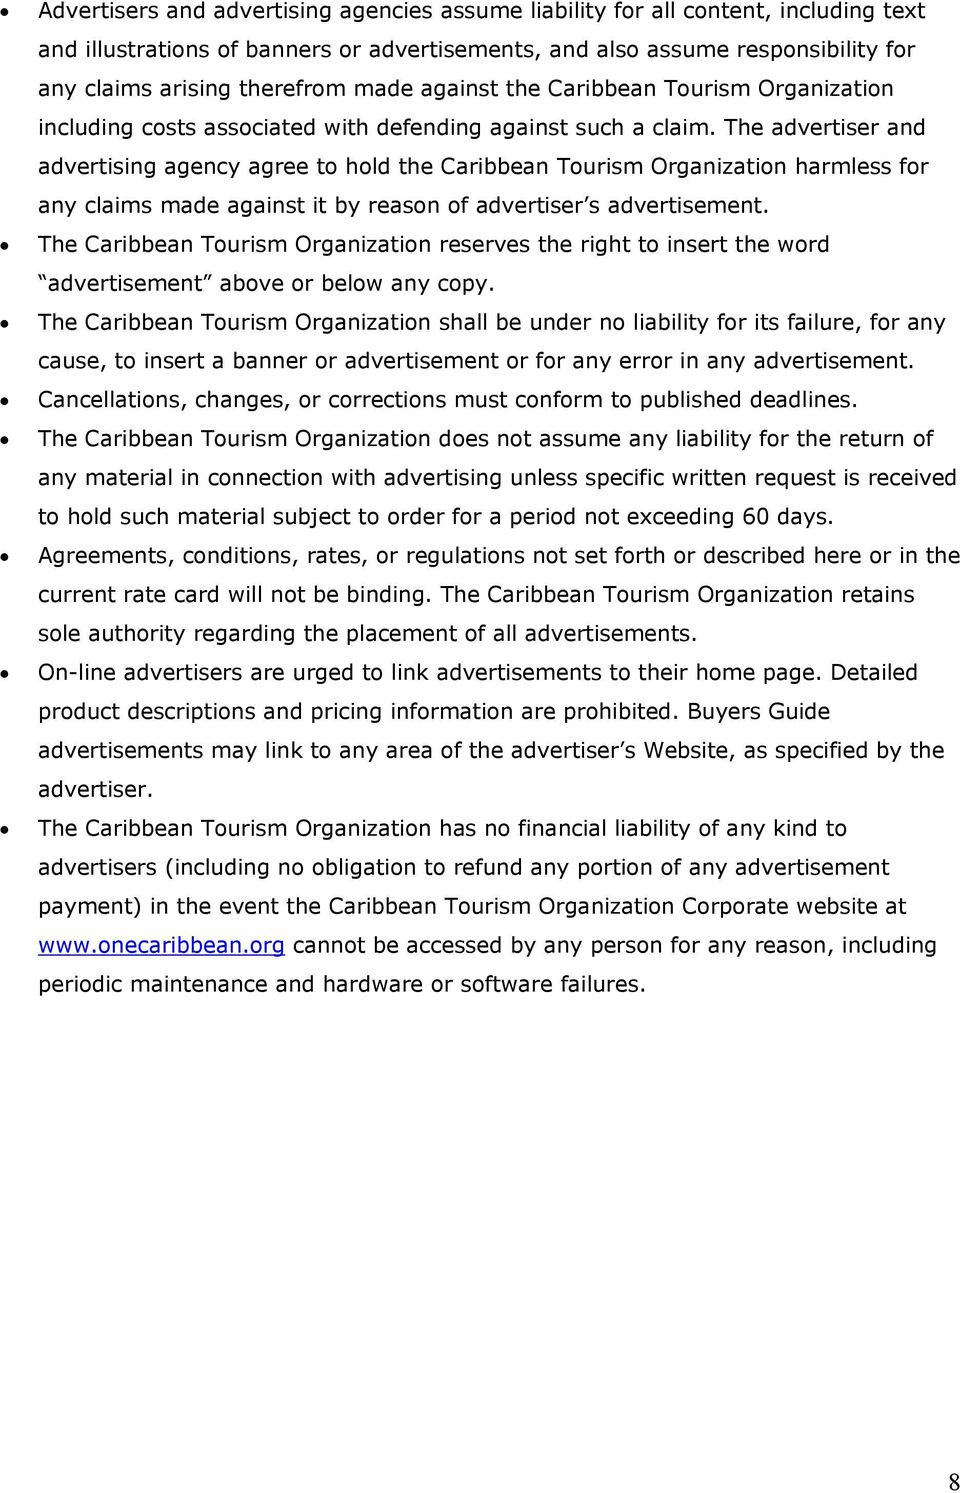 The advertiser and advertising agency agree to hold the Caribbean Tourism Organization harmless for any claims made against it by reason of advertiser s advertisement.